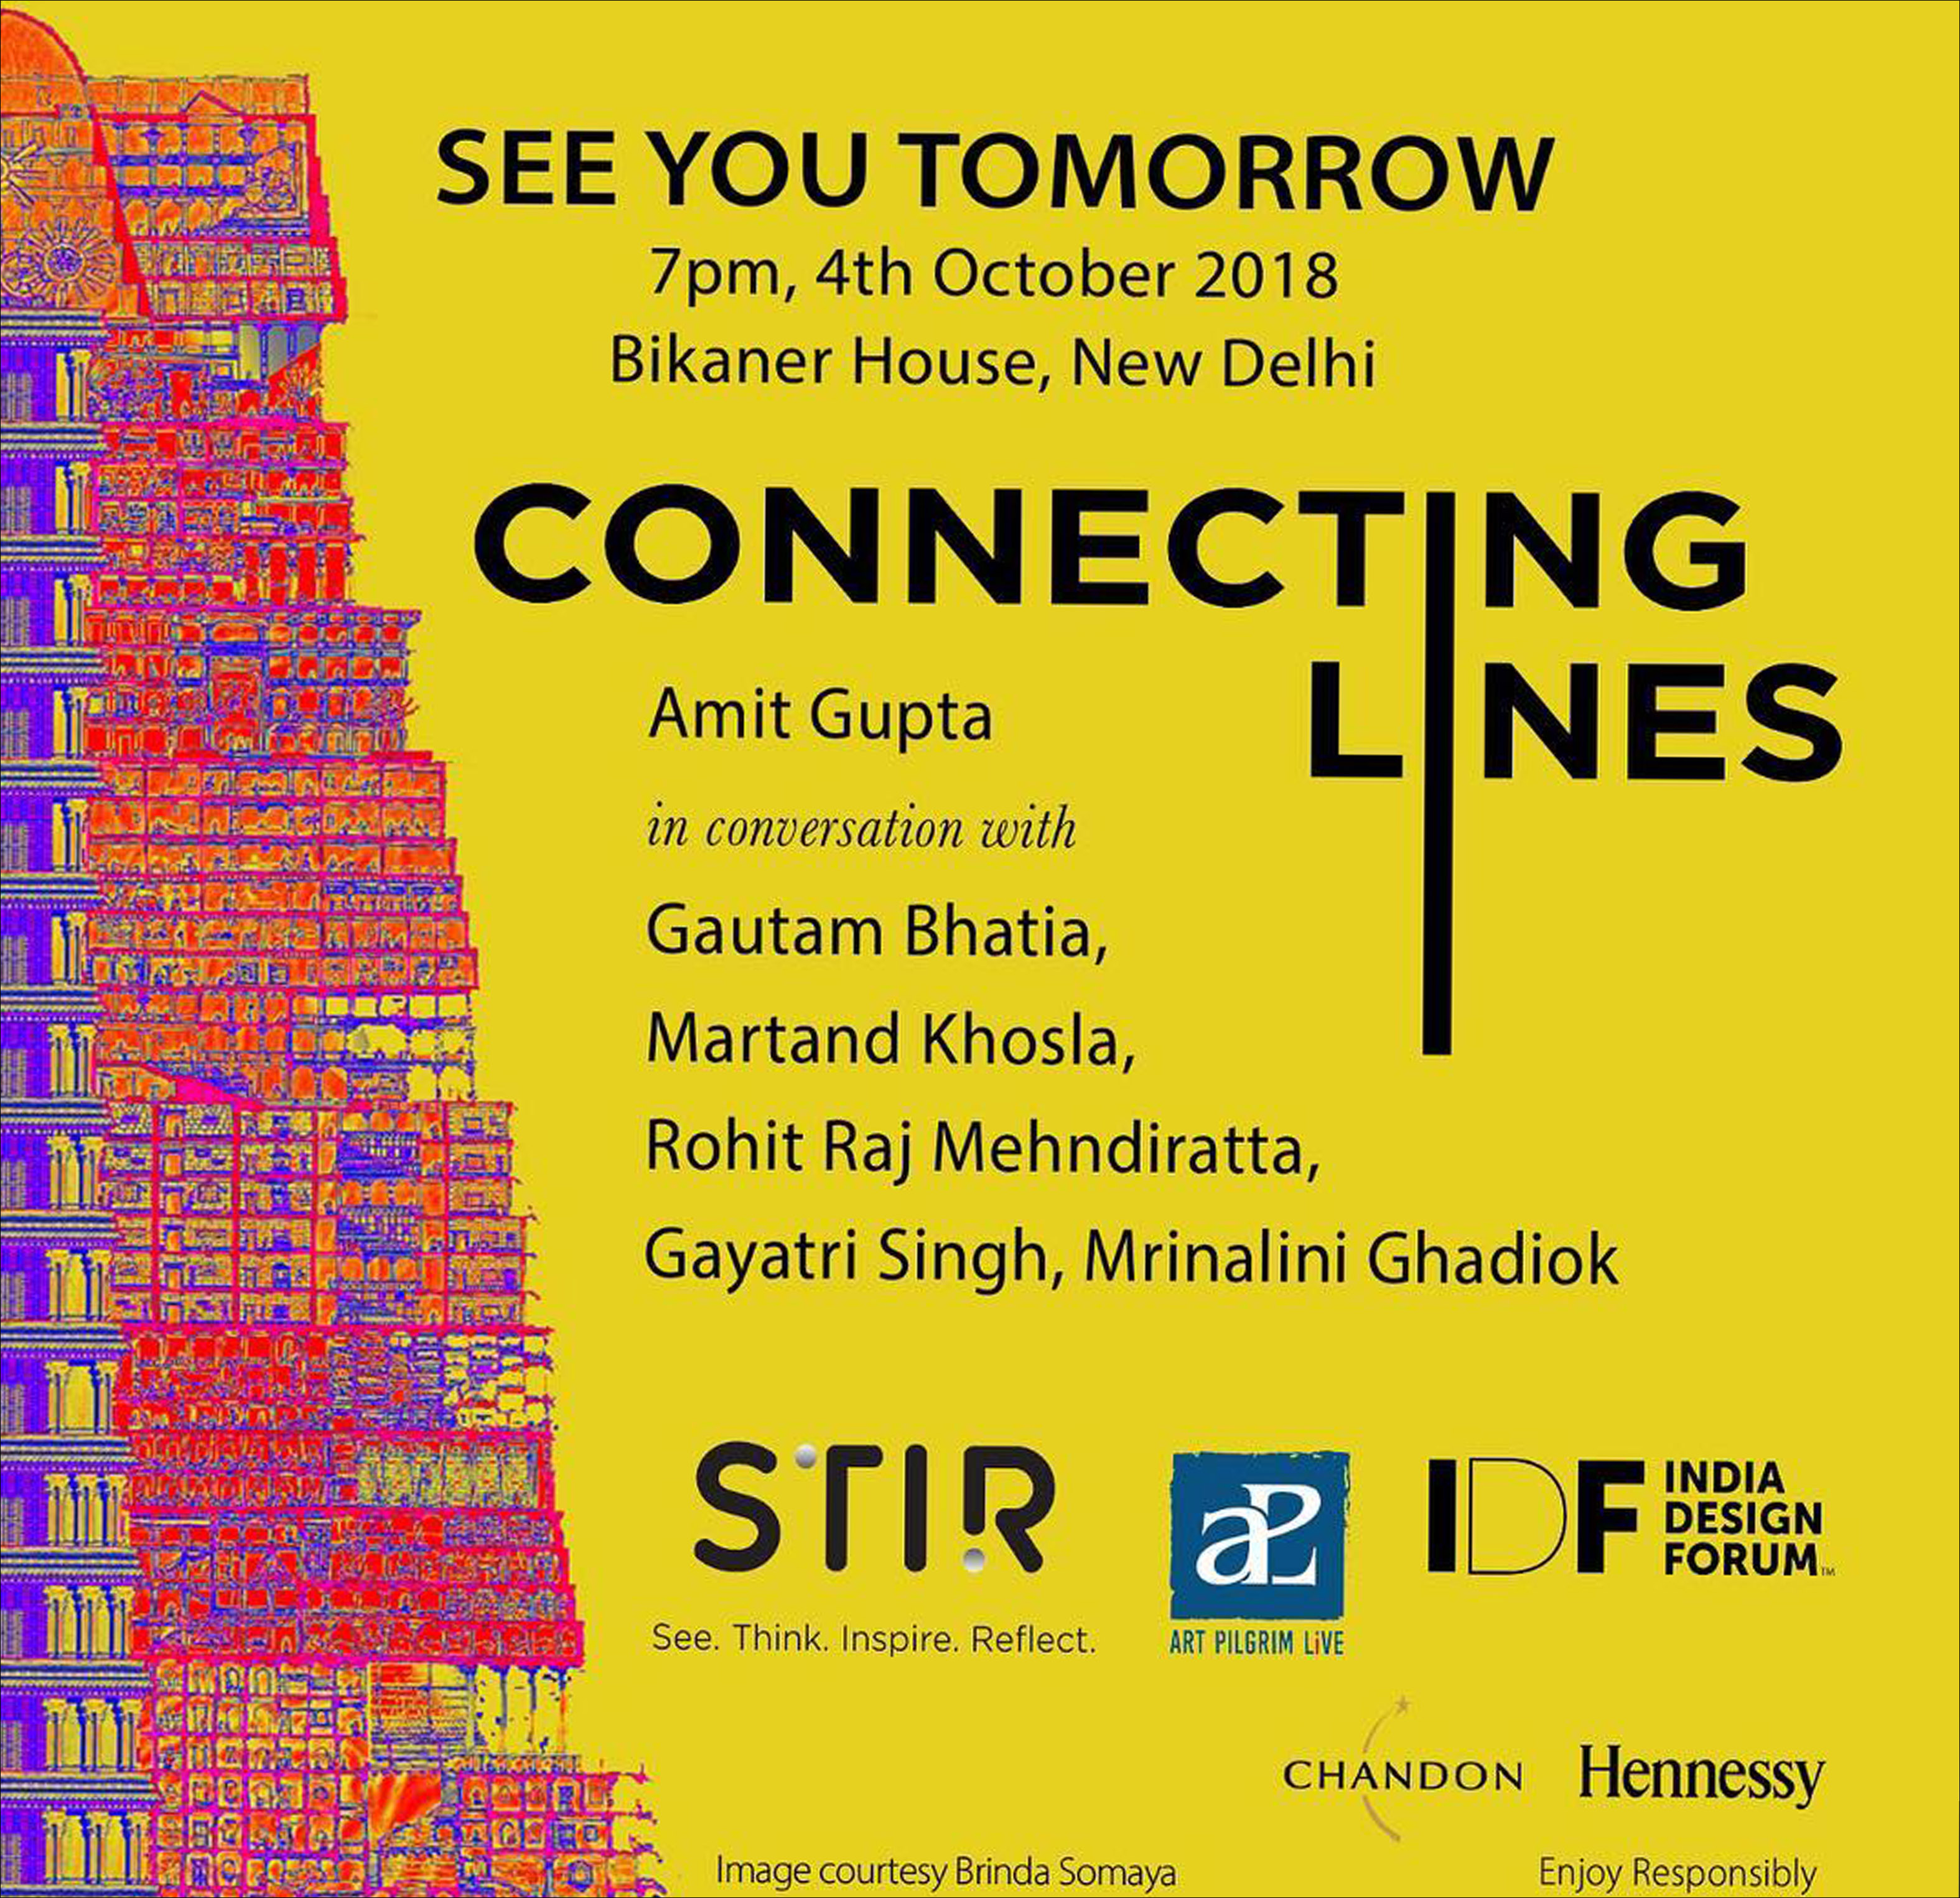 See you Tomorrow at Connecting Lines - Mondo arc india